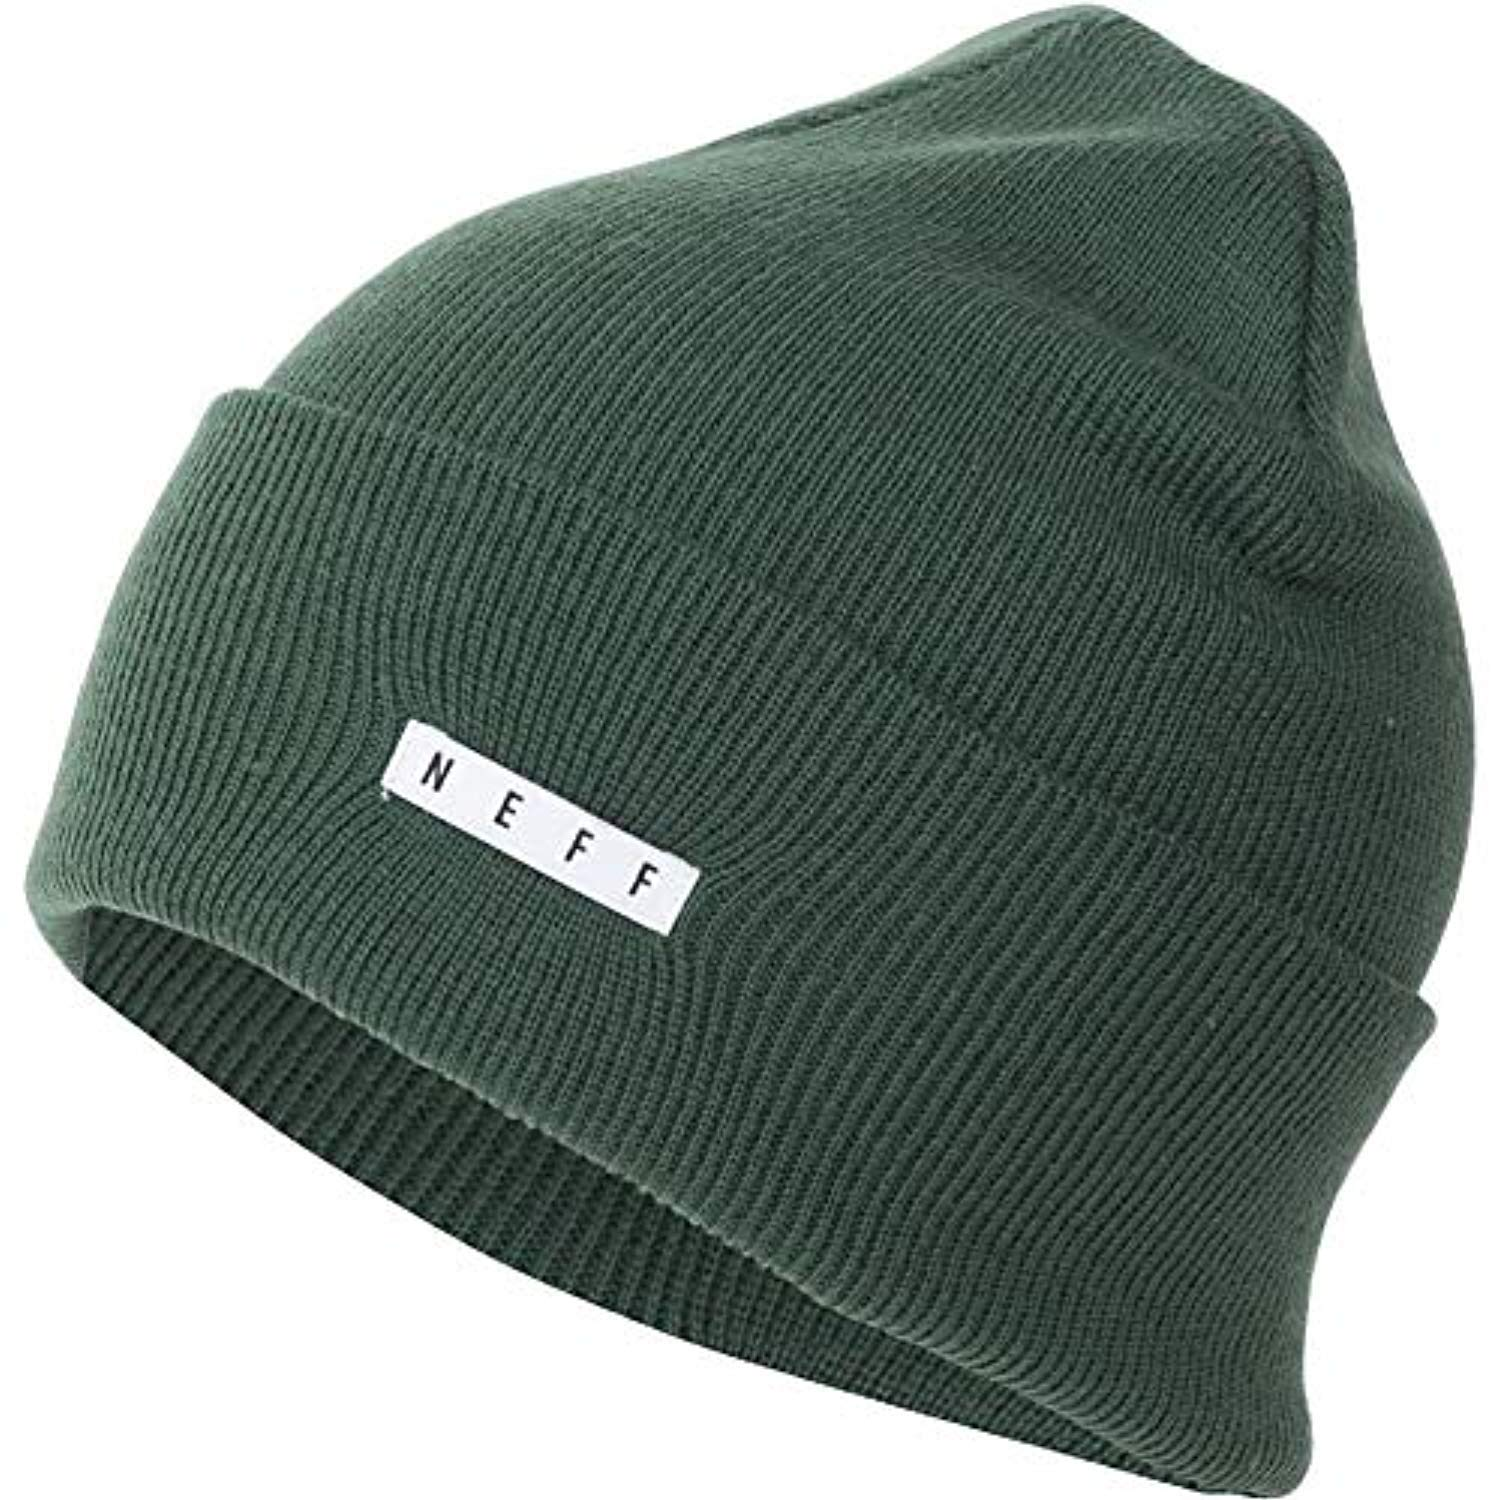 12bbc99bdac NEFF Men s Lawrence Beanie Black One Size Neff Young Men s NF00028 ...